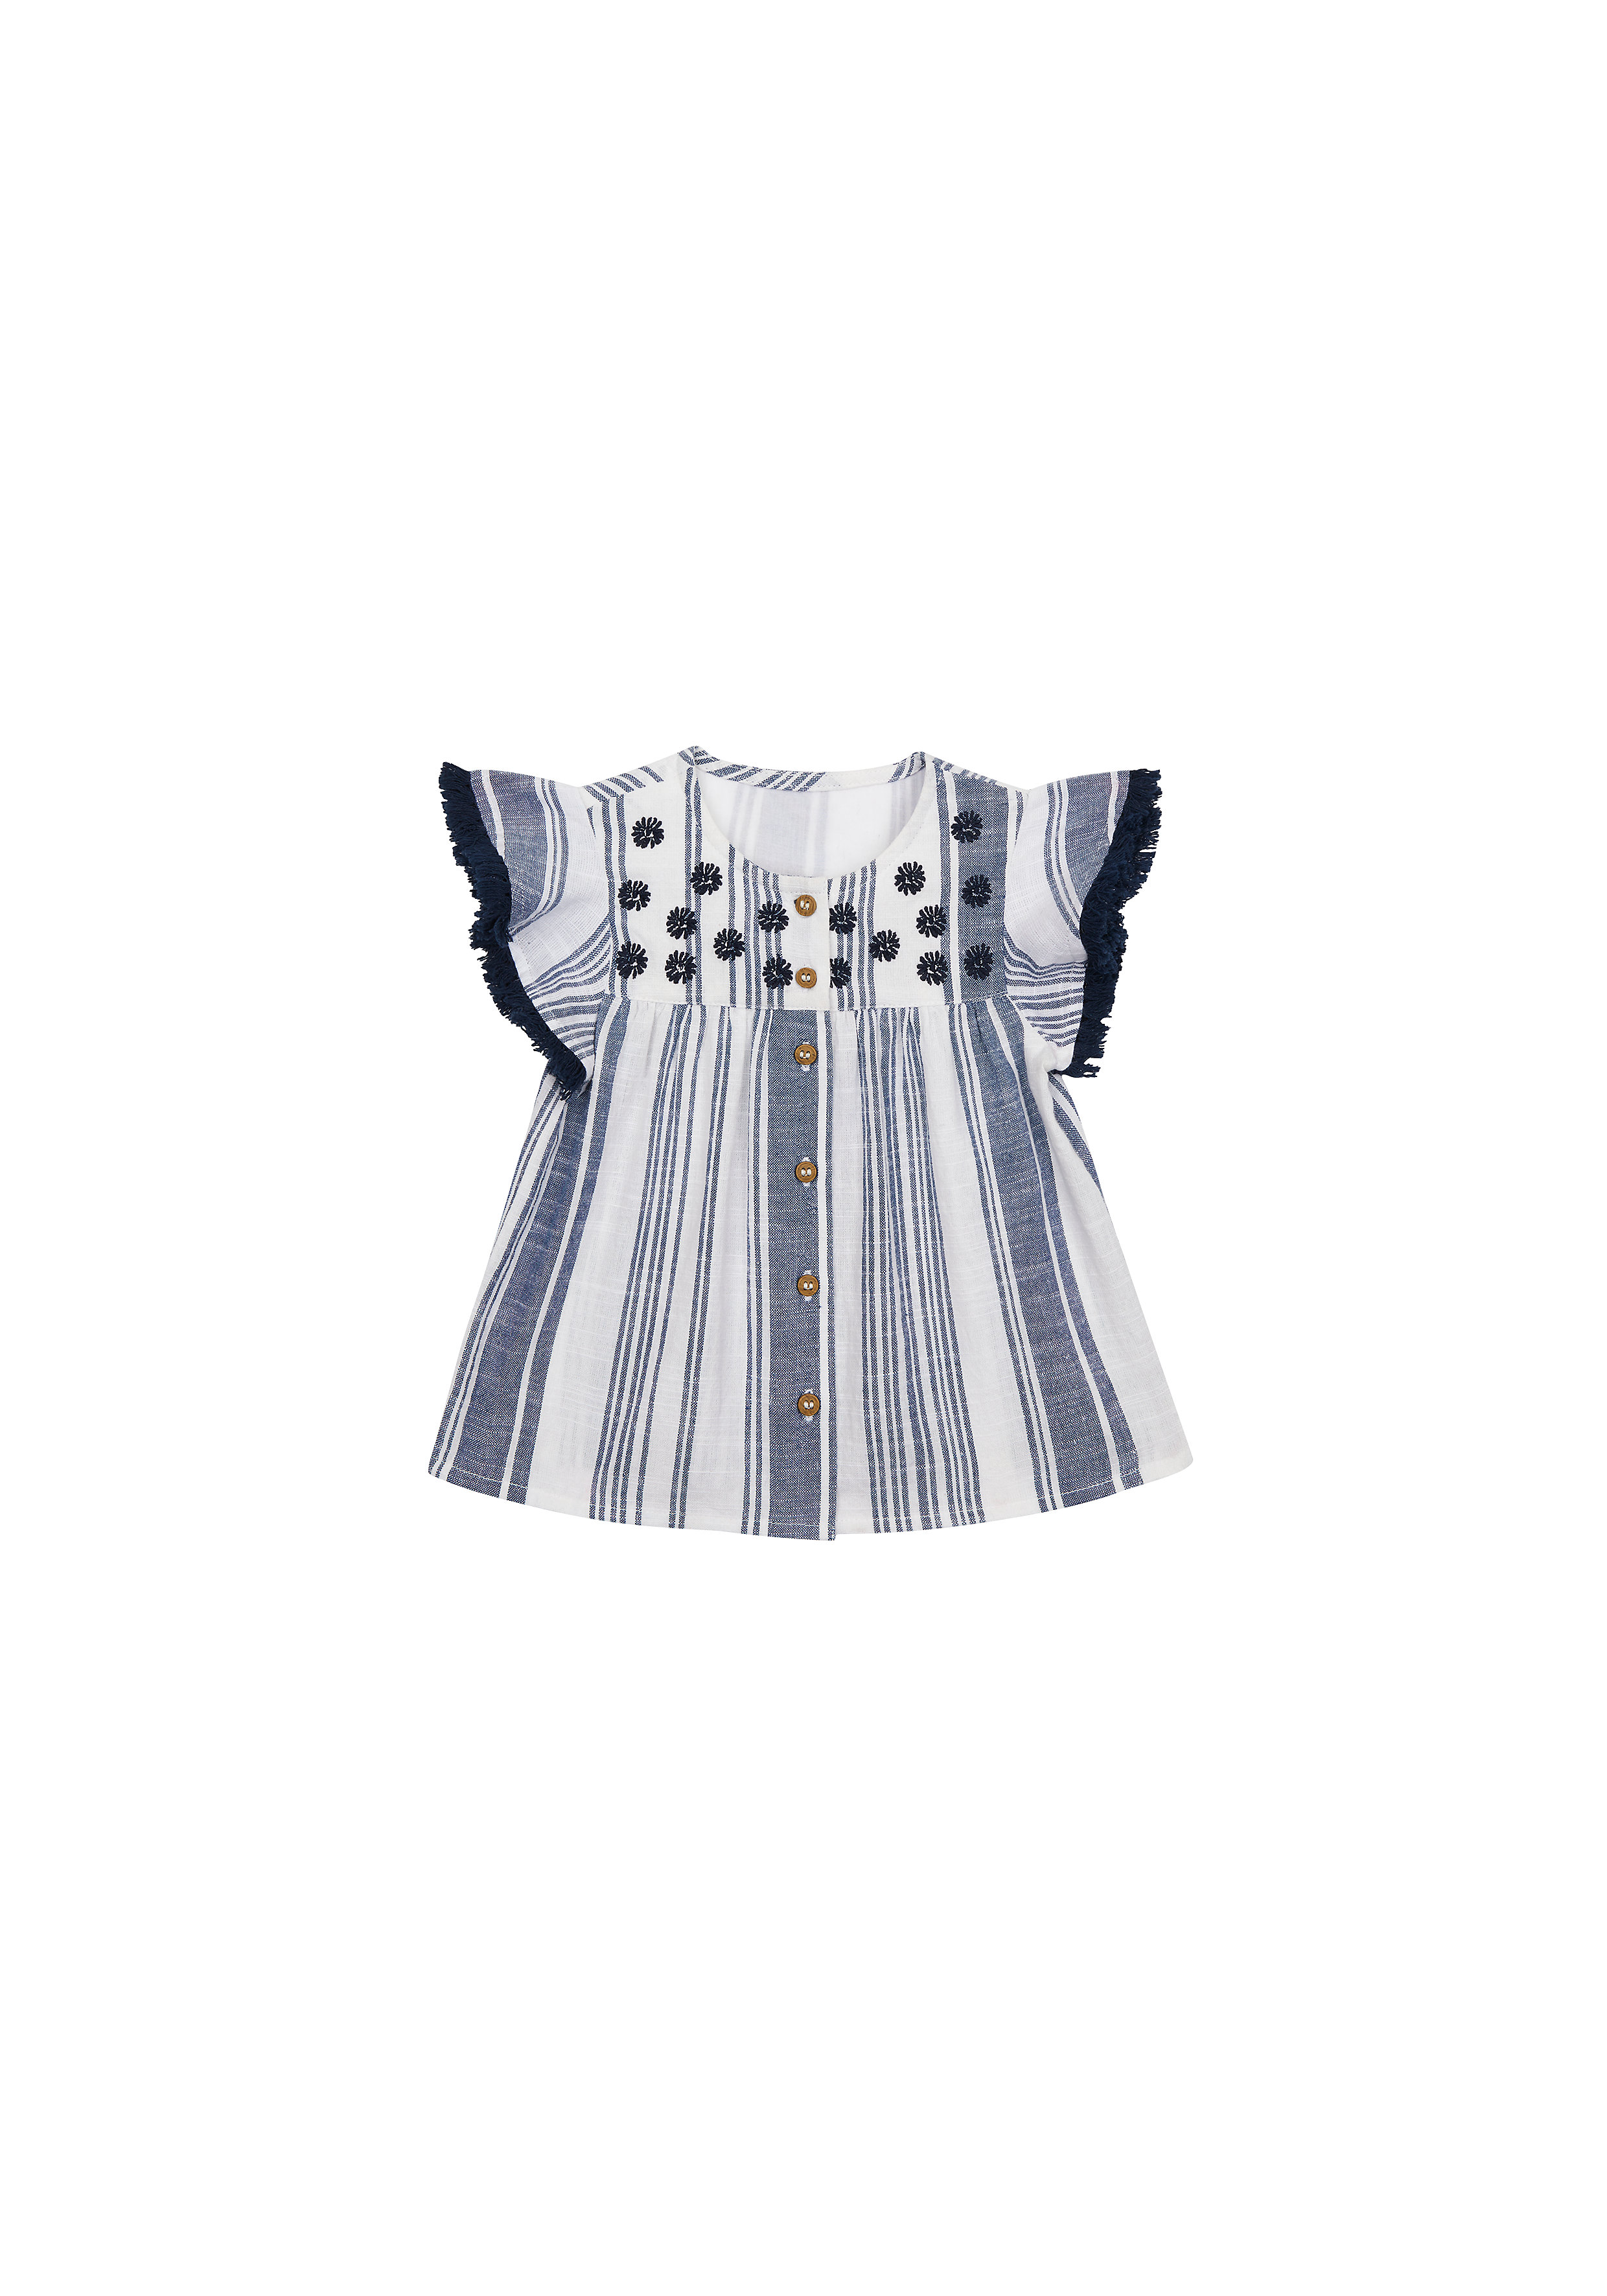 Mothercare | Girls Half Sleeves Striped Top Embroidered - White Navy